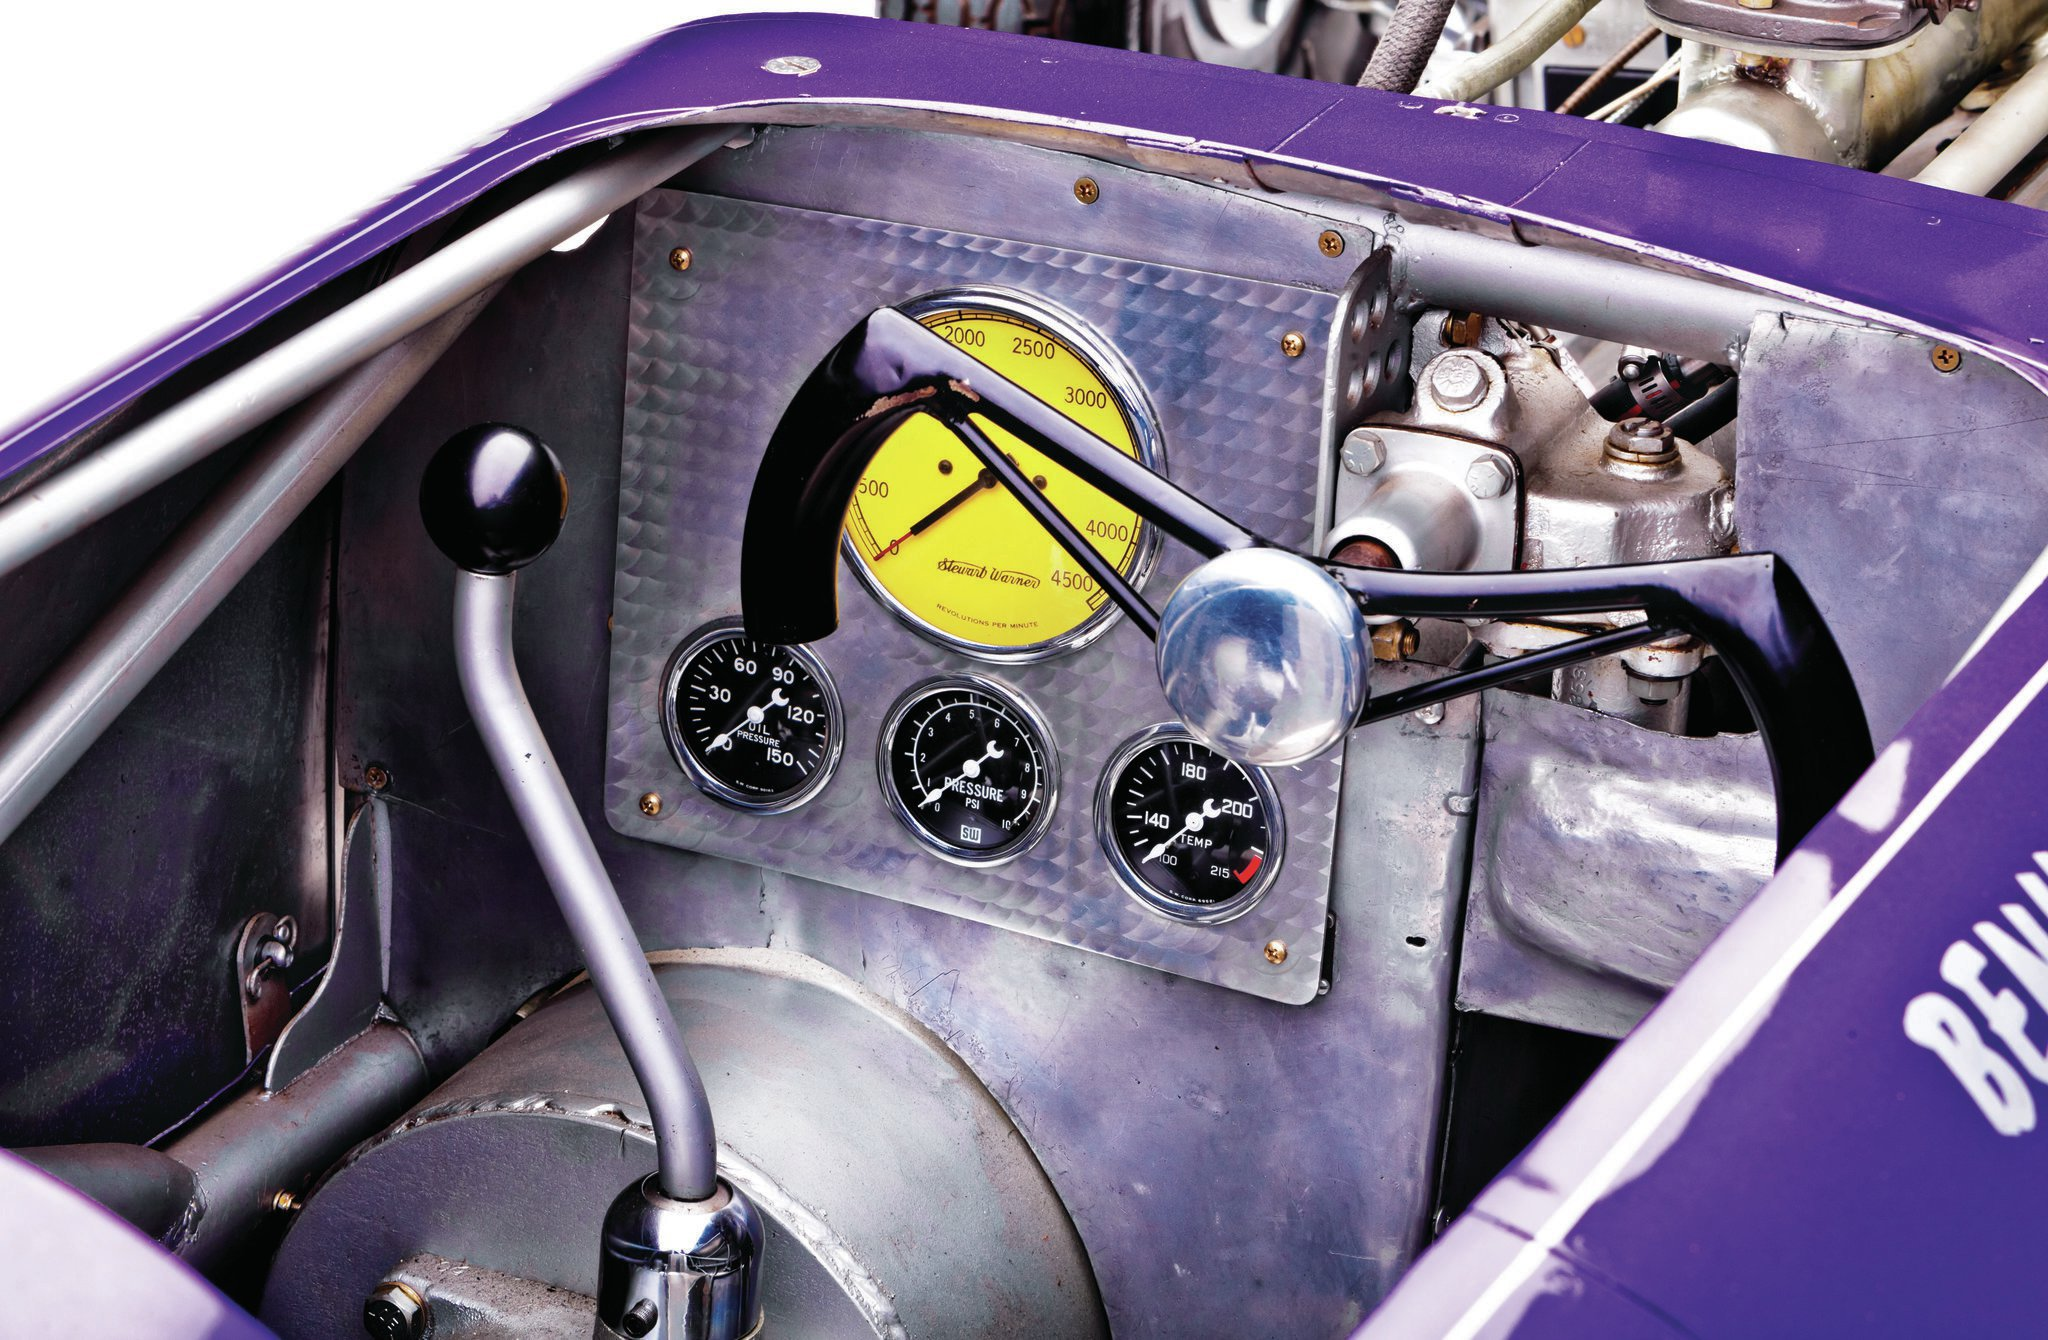 The engine isn't the only part of the Hisso that makes use of grounded airplane parts. The gauges, steering wheel, and seat are all ex-aero. The driver shares the cockpit with a 1937 Cadillac transmission.